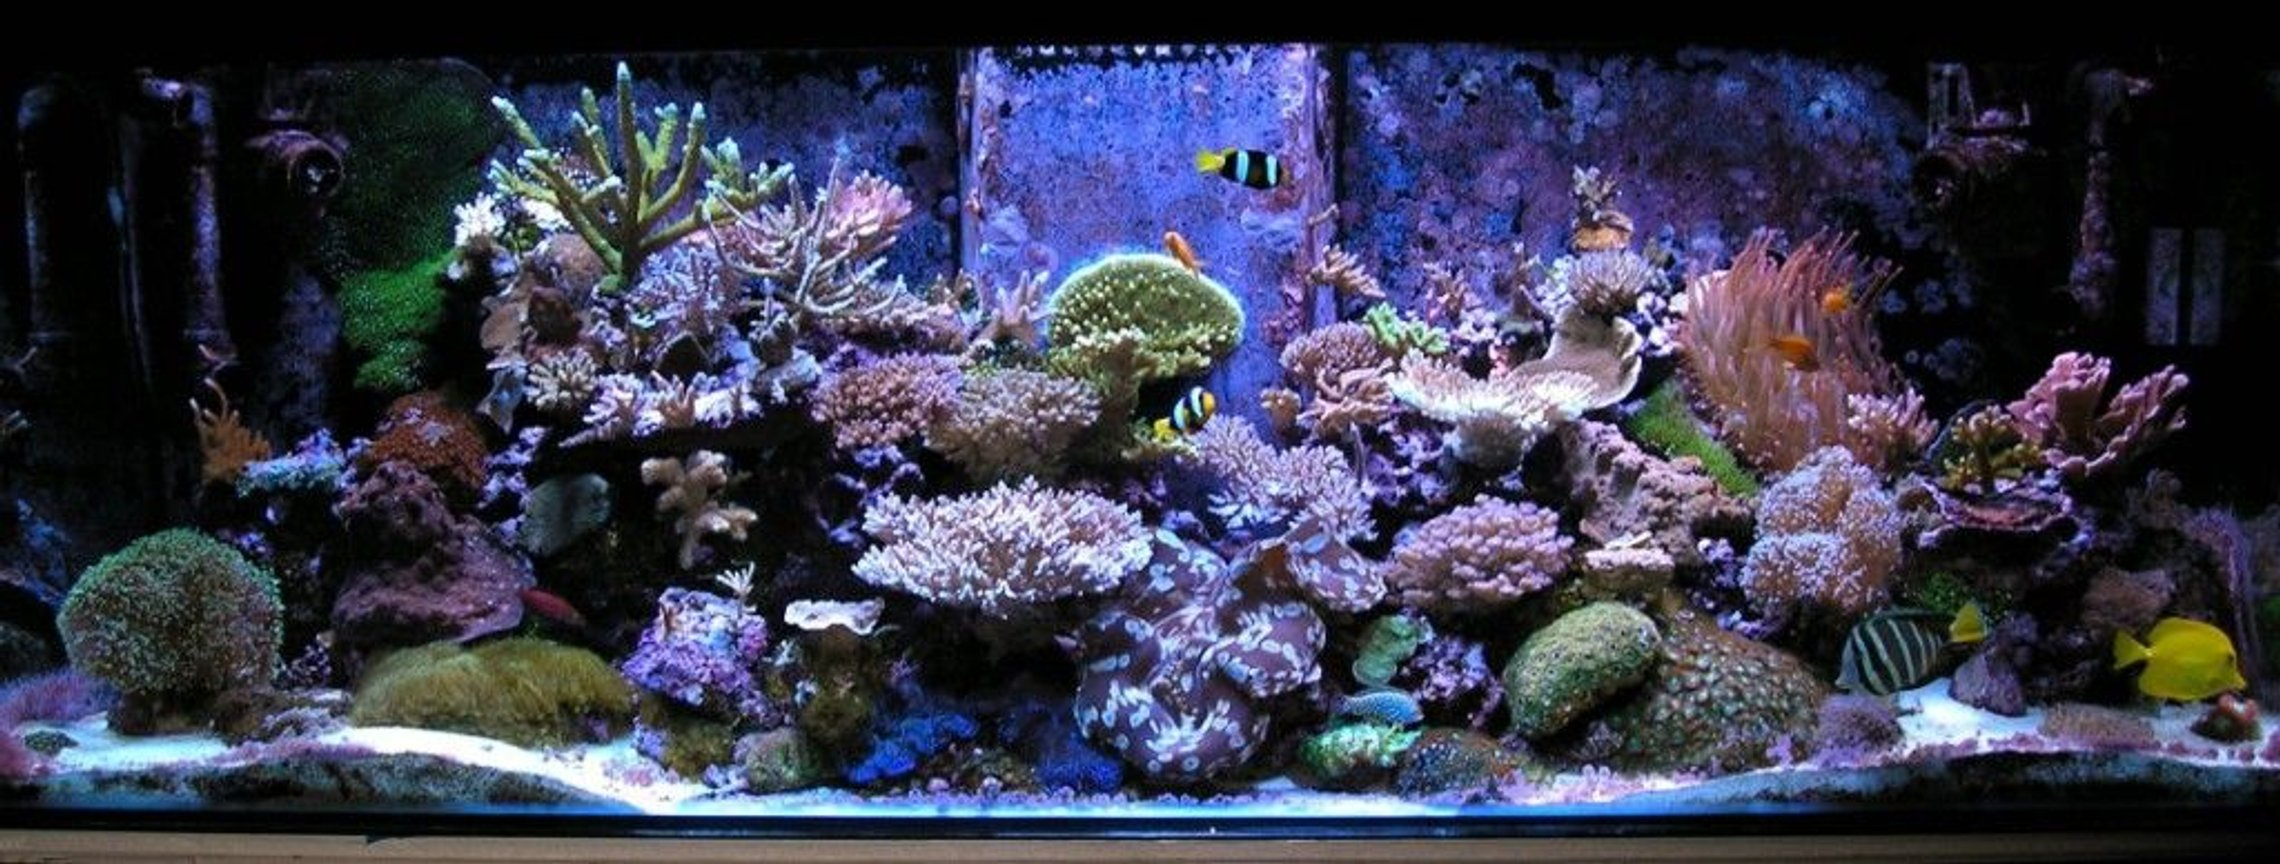 180 gallons reef tank (mostly live coral and fish) - recent pic